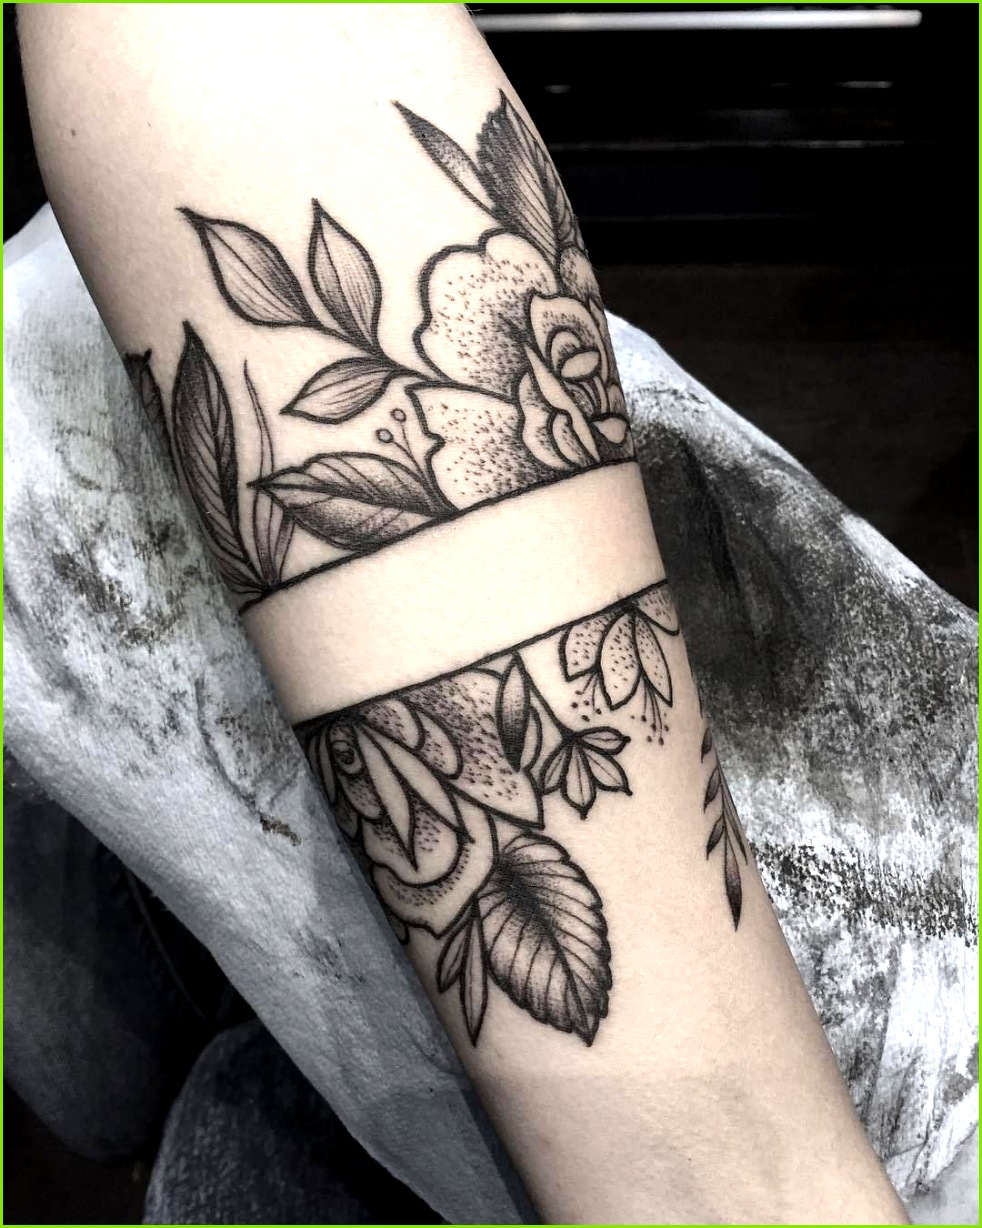 Flower Arm Band Tattoo Artist Olivia Hogan Tattooer dog mom armtattoosforwomen